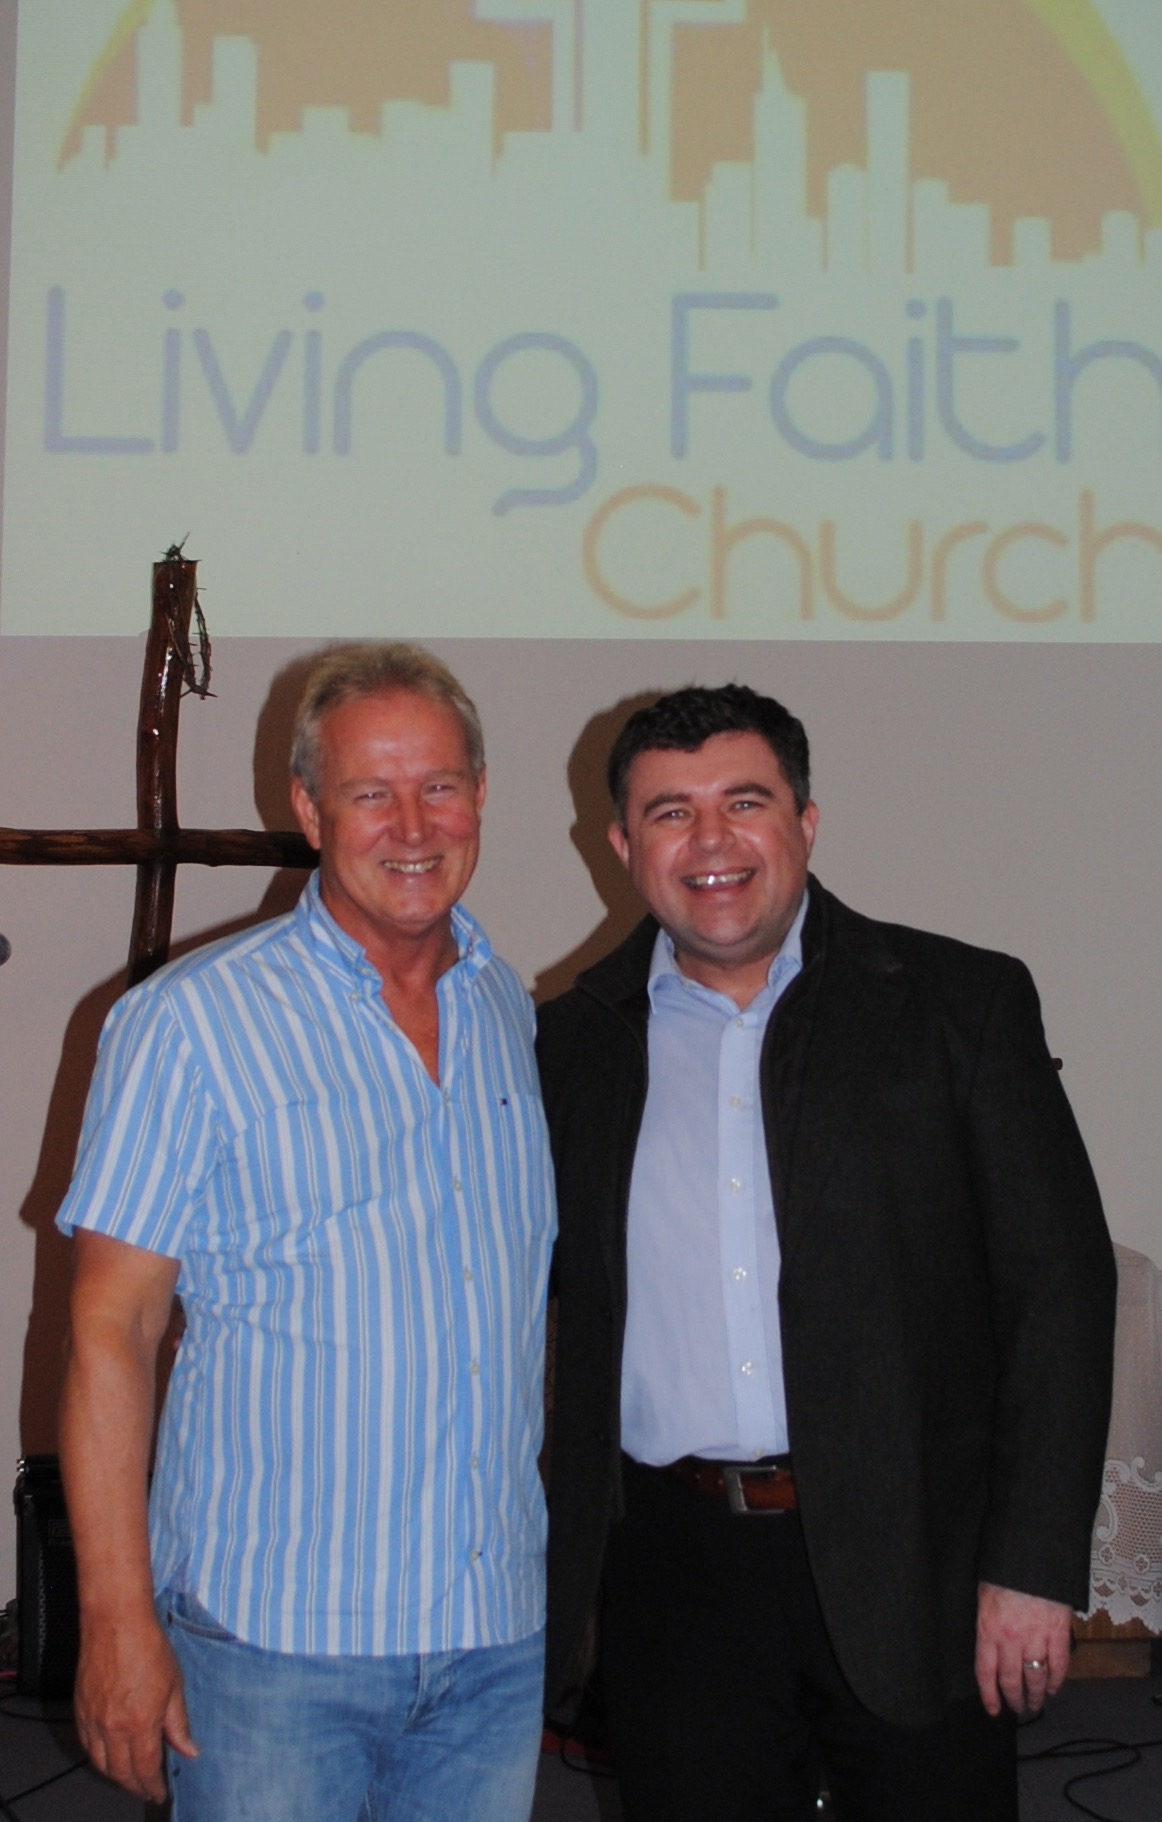 Ian McCormack and Bishop Steven Lyn Evans